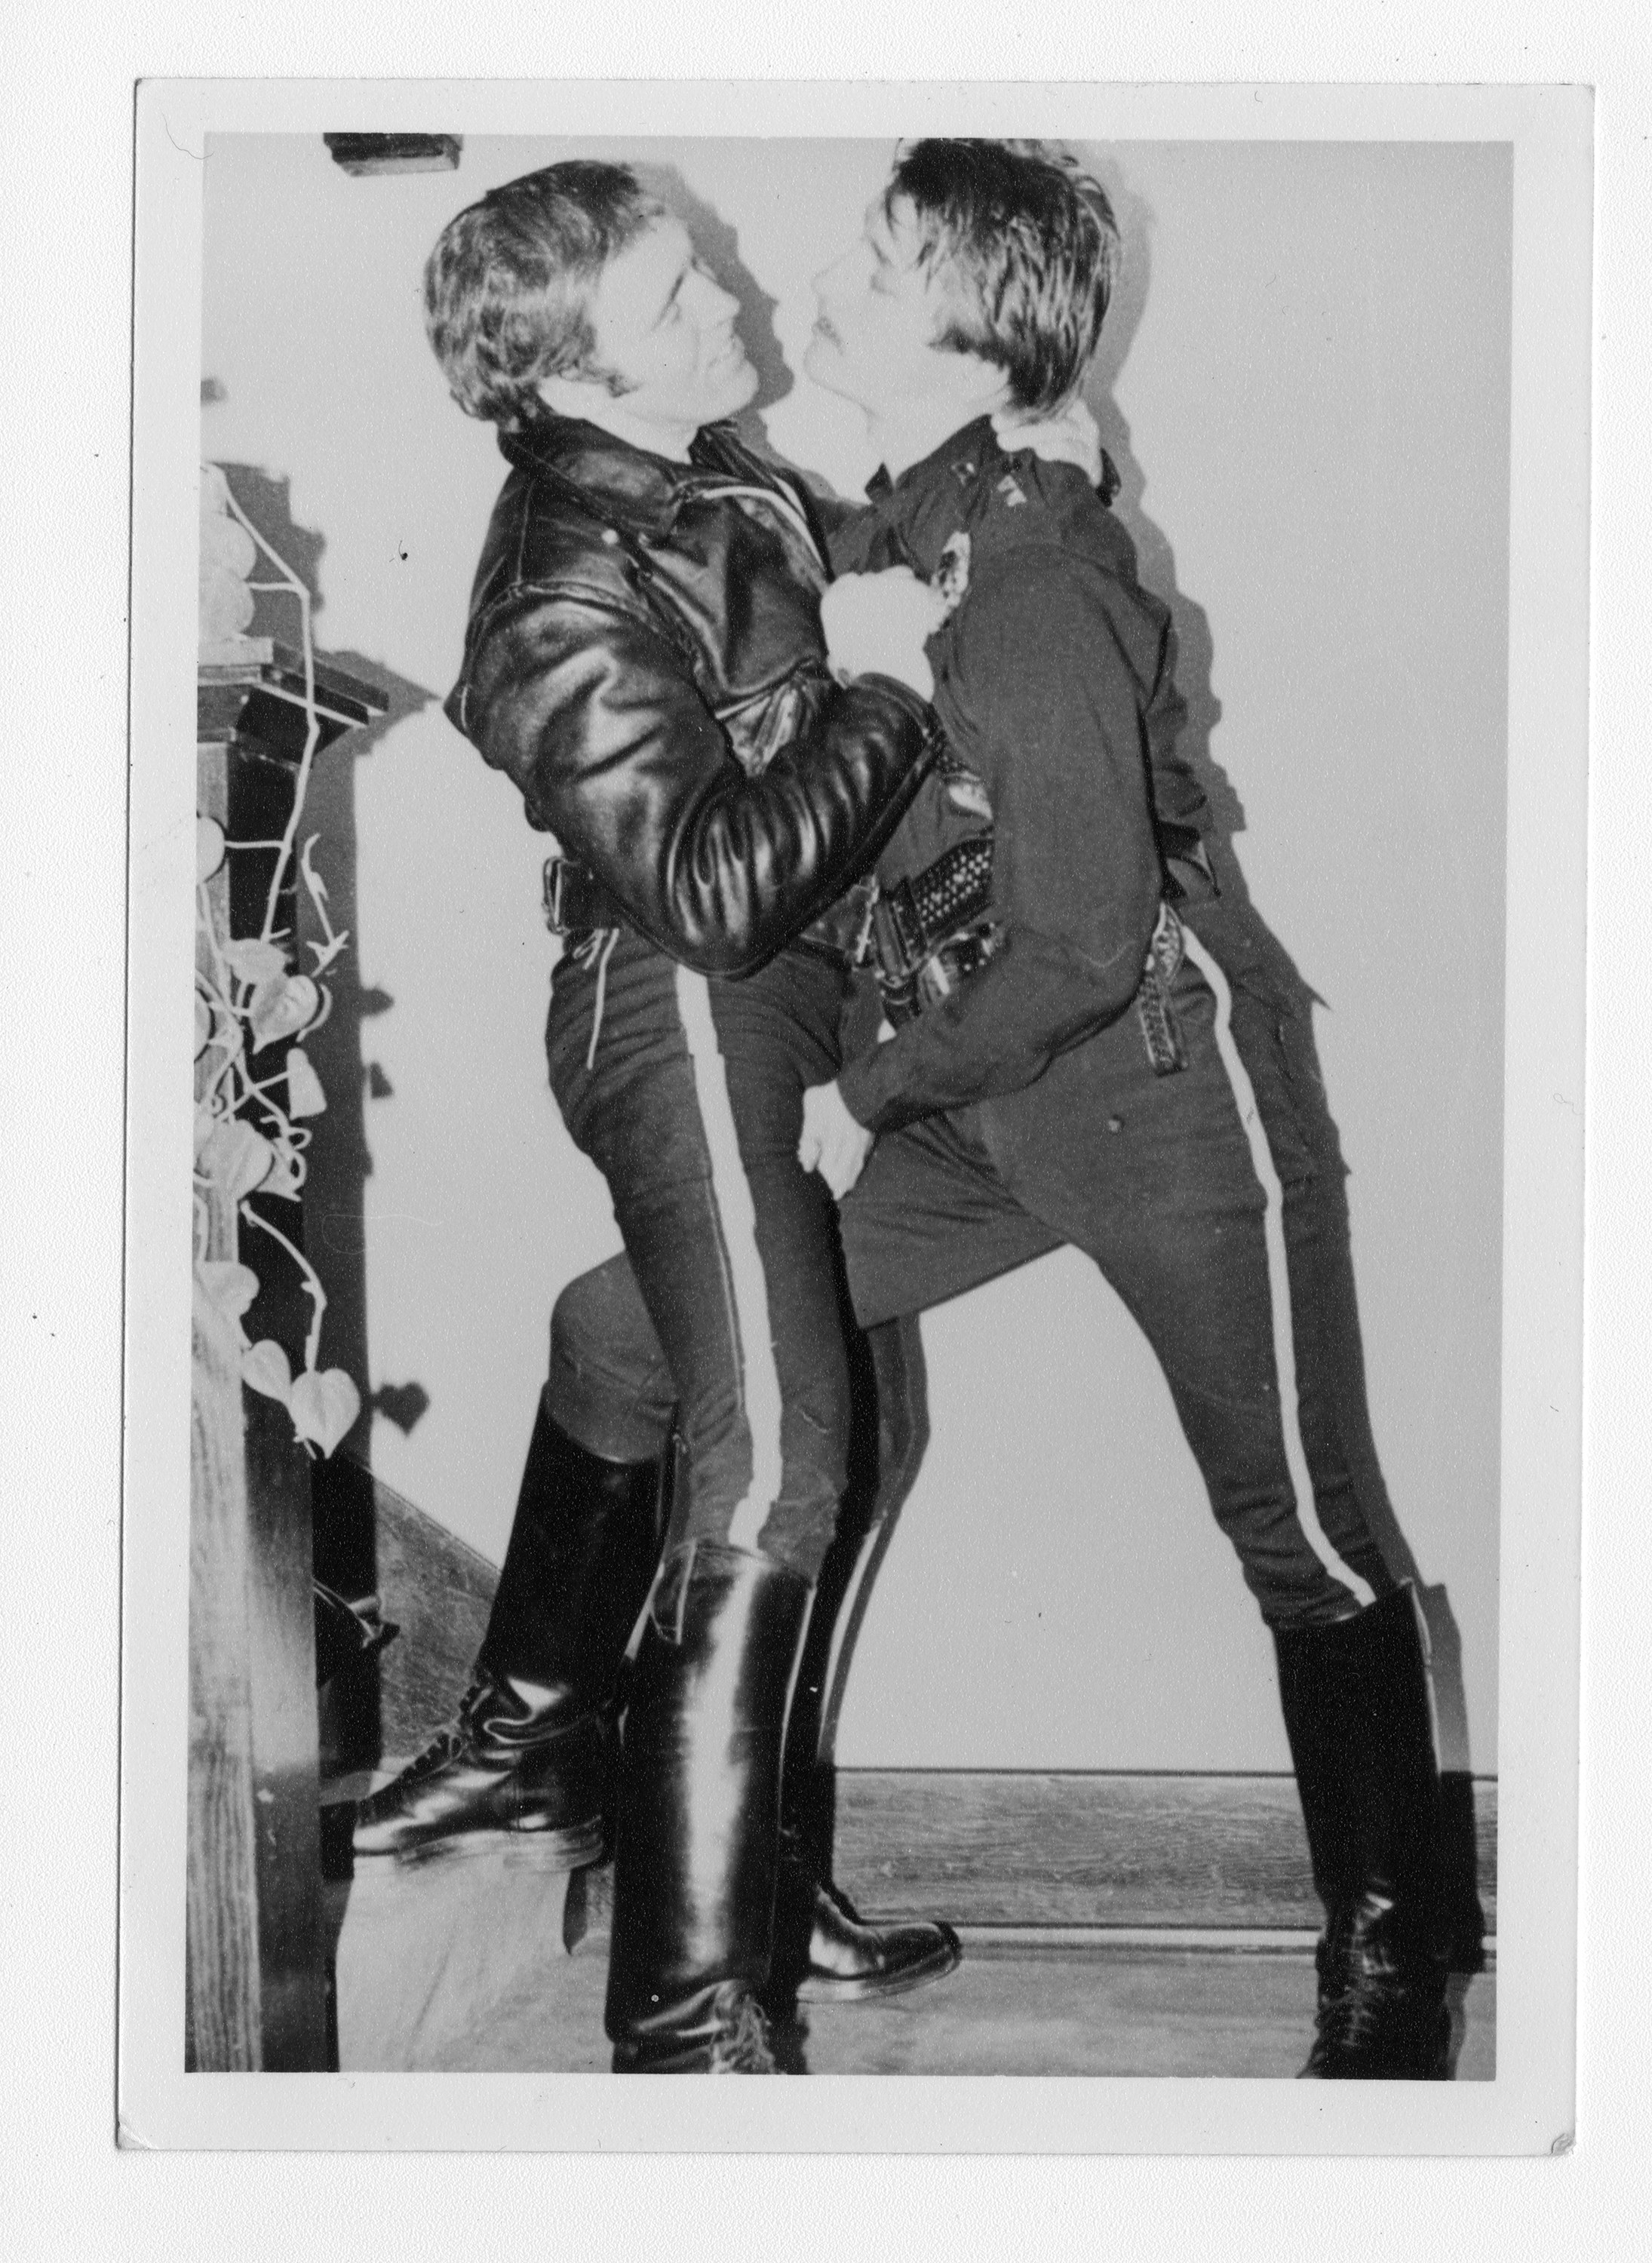 Two men wearing militaristic leather uniforms hold one another as one grabs the other's crotch